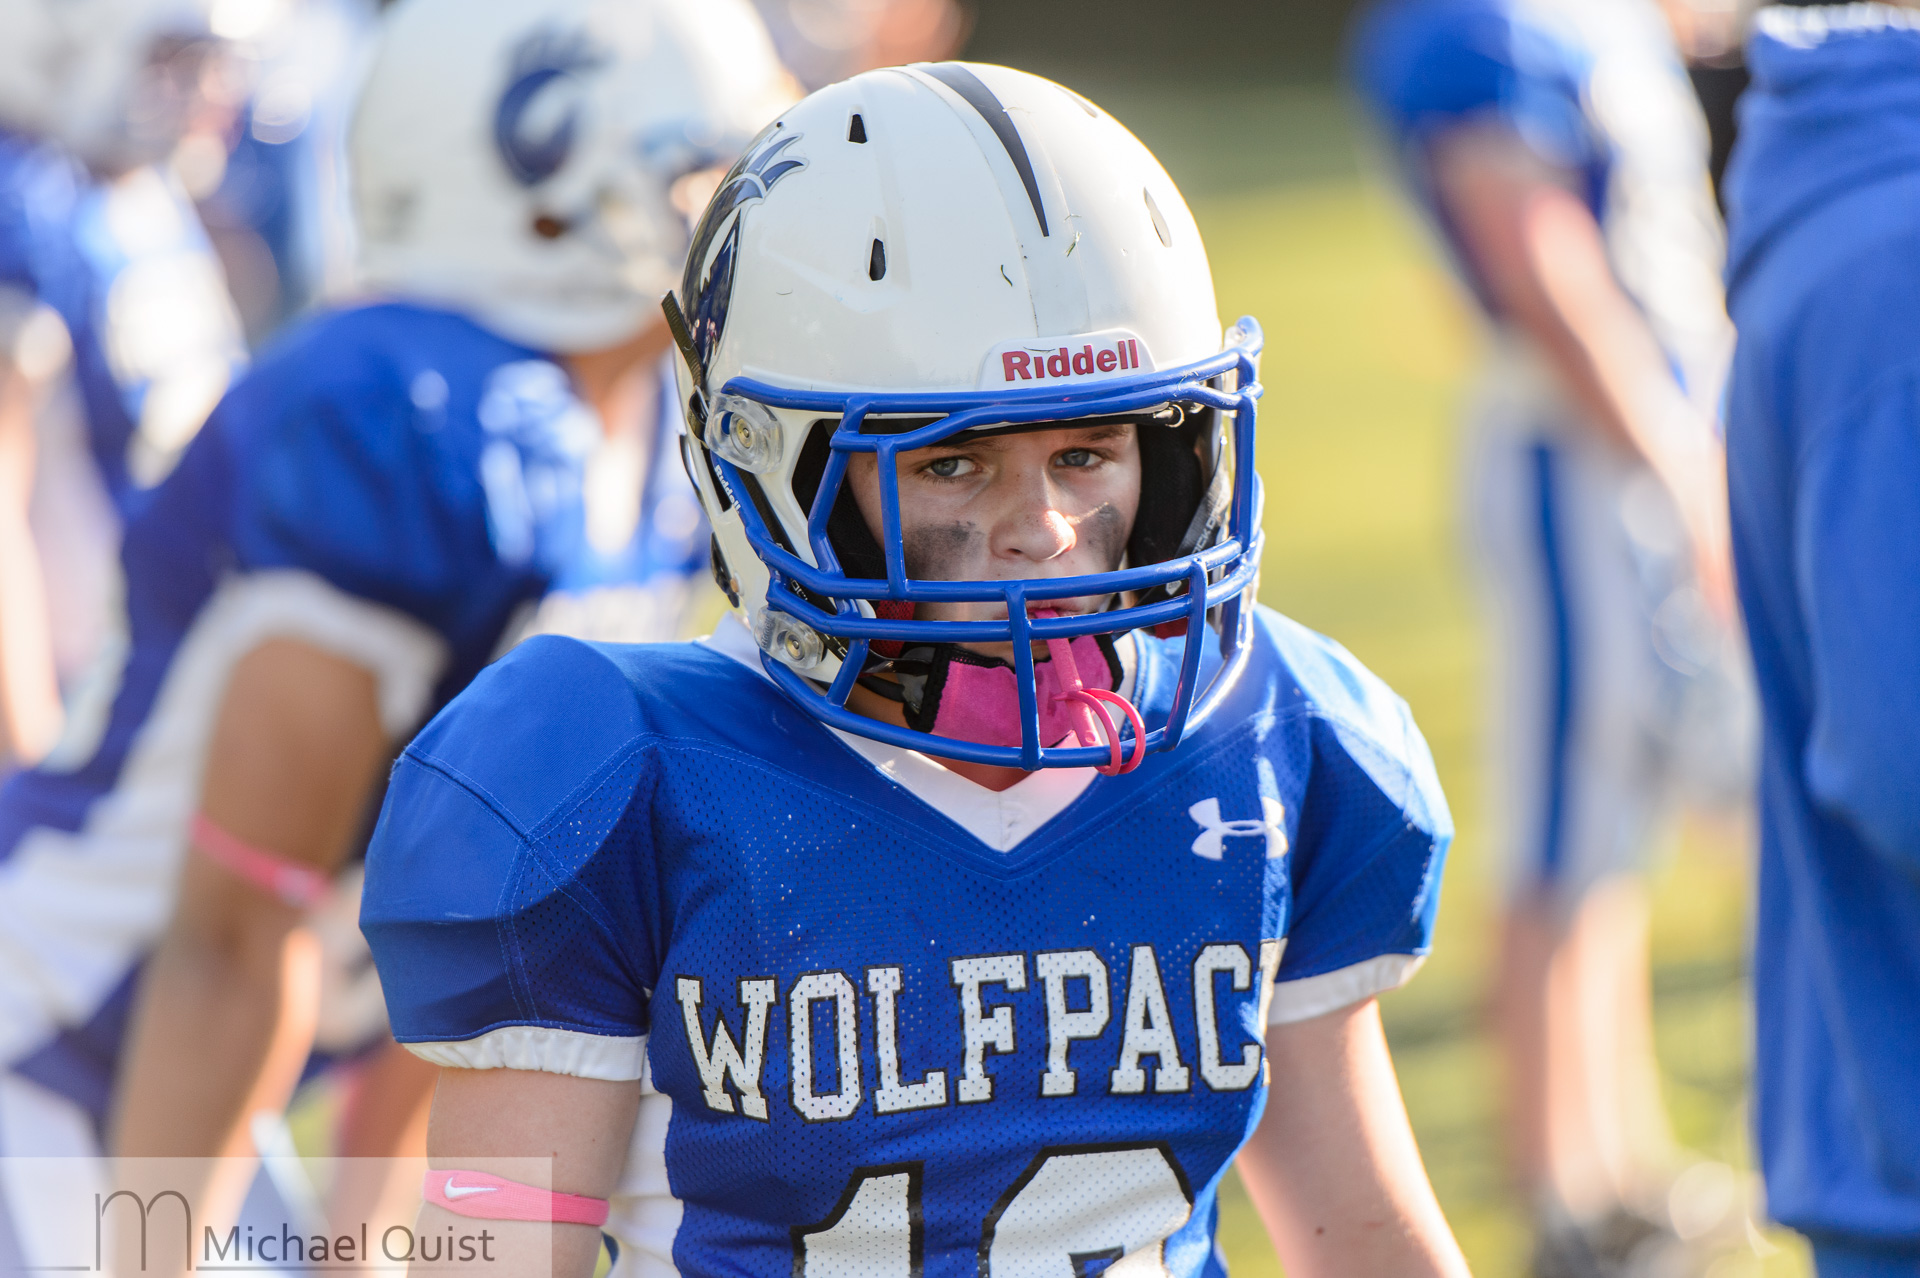 U16-RS-Bowl-2015-Ørestaden-Spartans-vs-Slagelse-Wolfpack-44